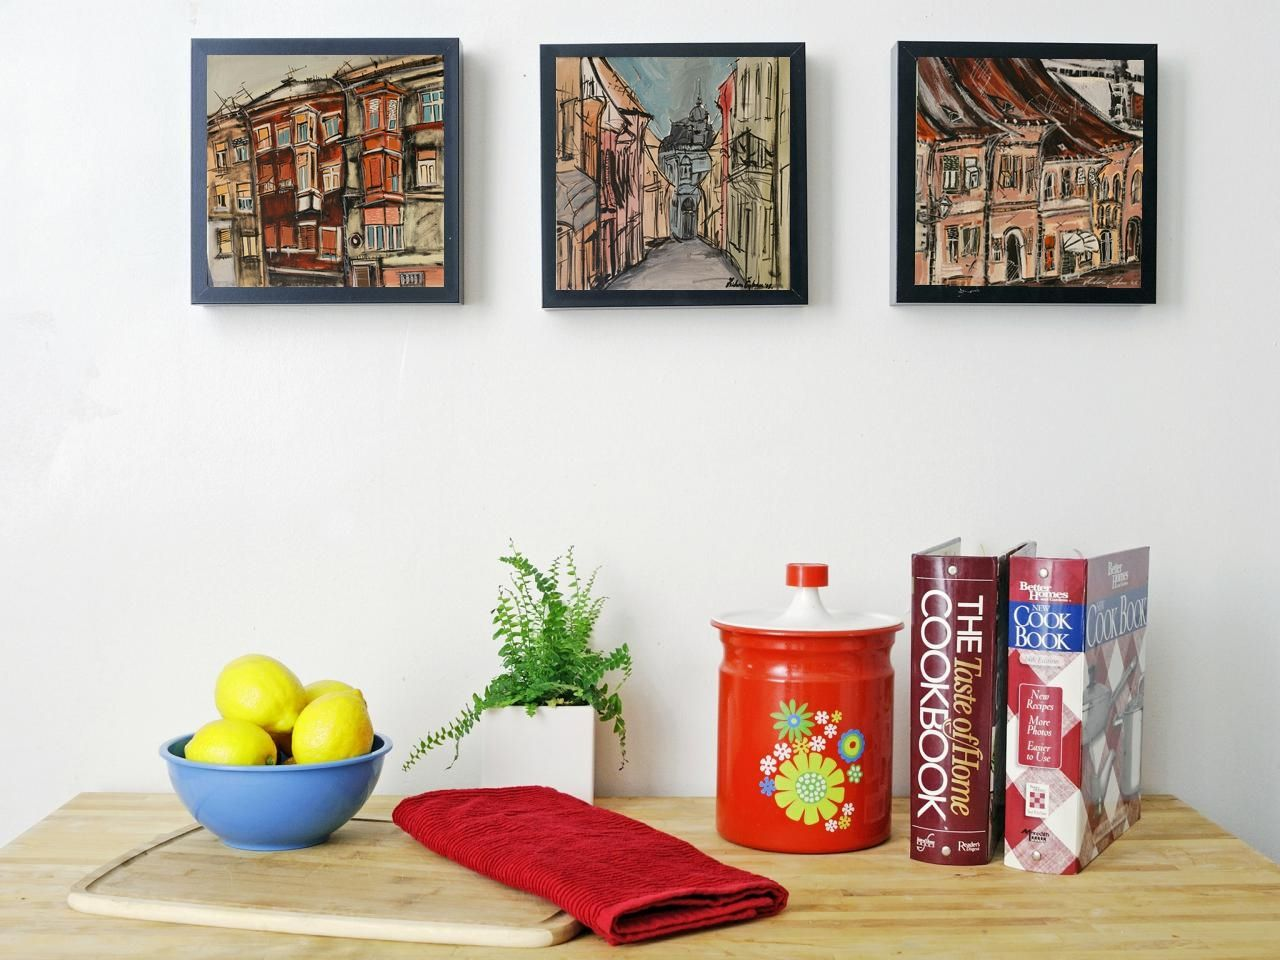 Joun us and like our page homedecor painting art wall decor